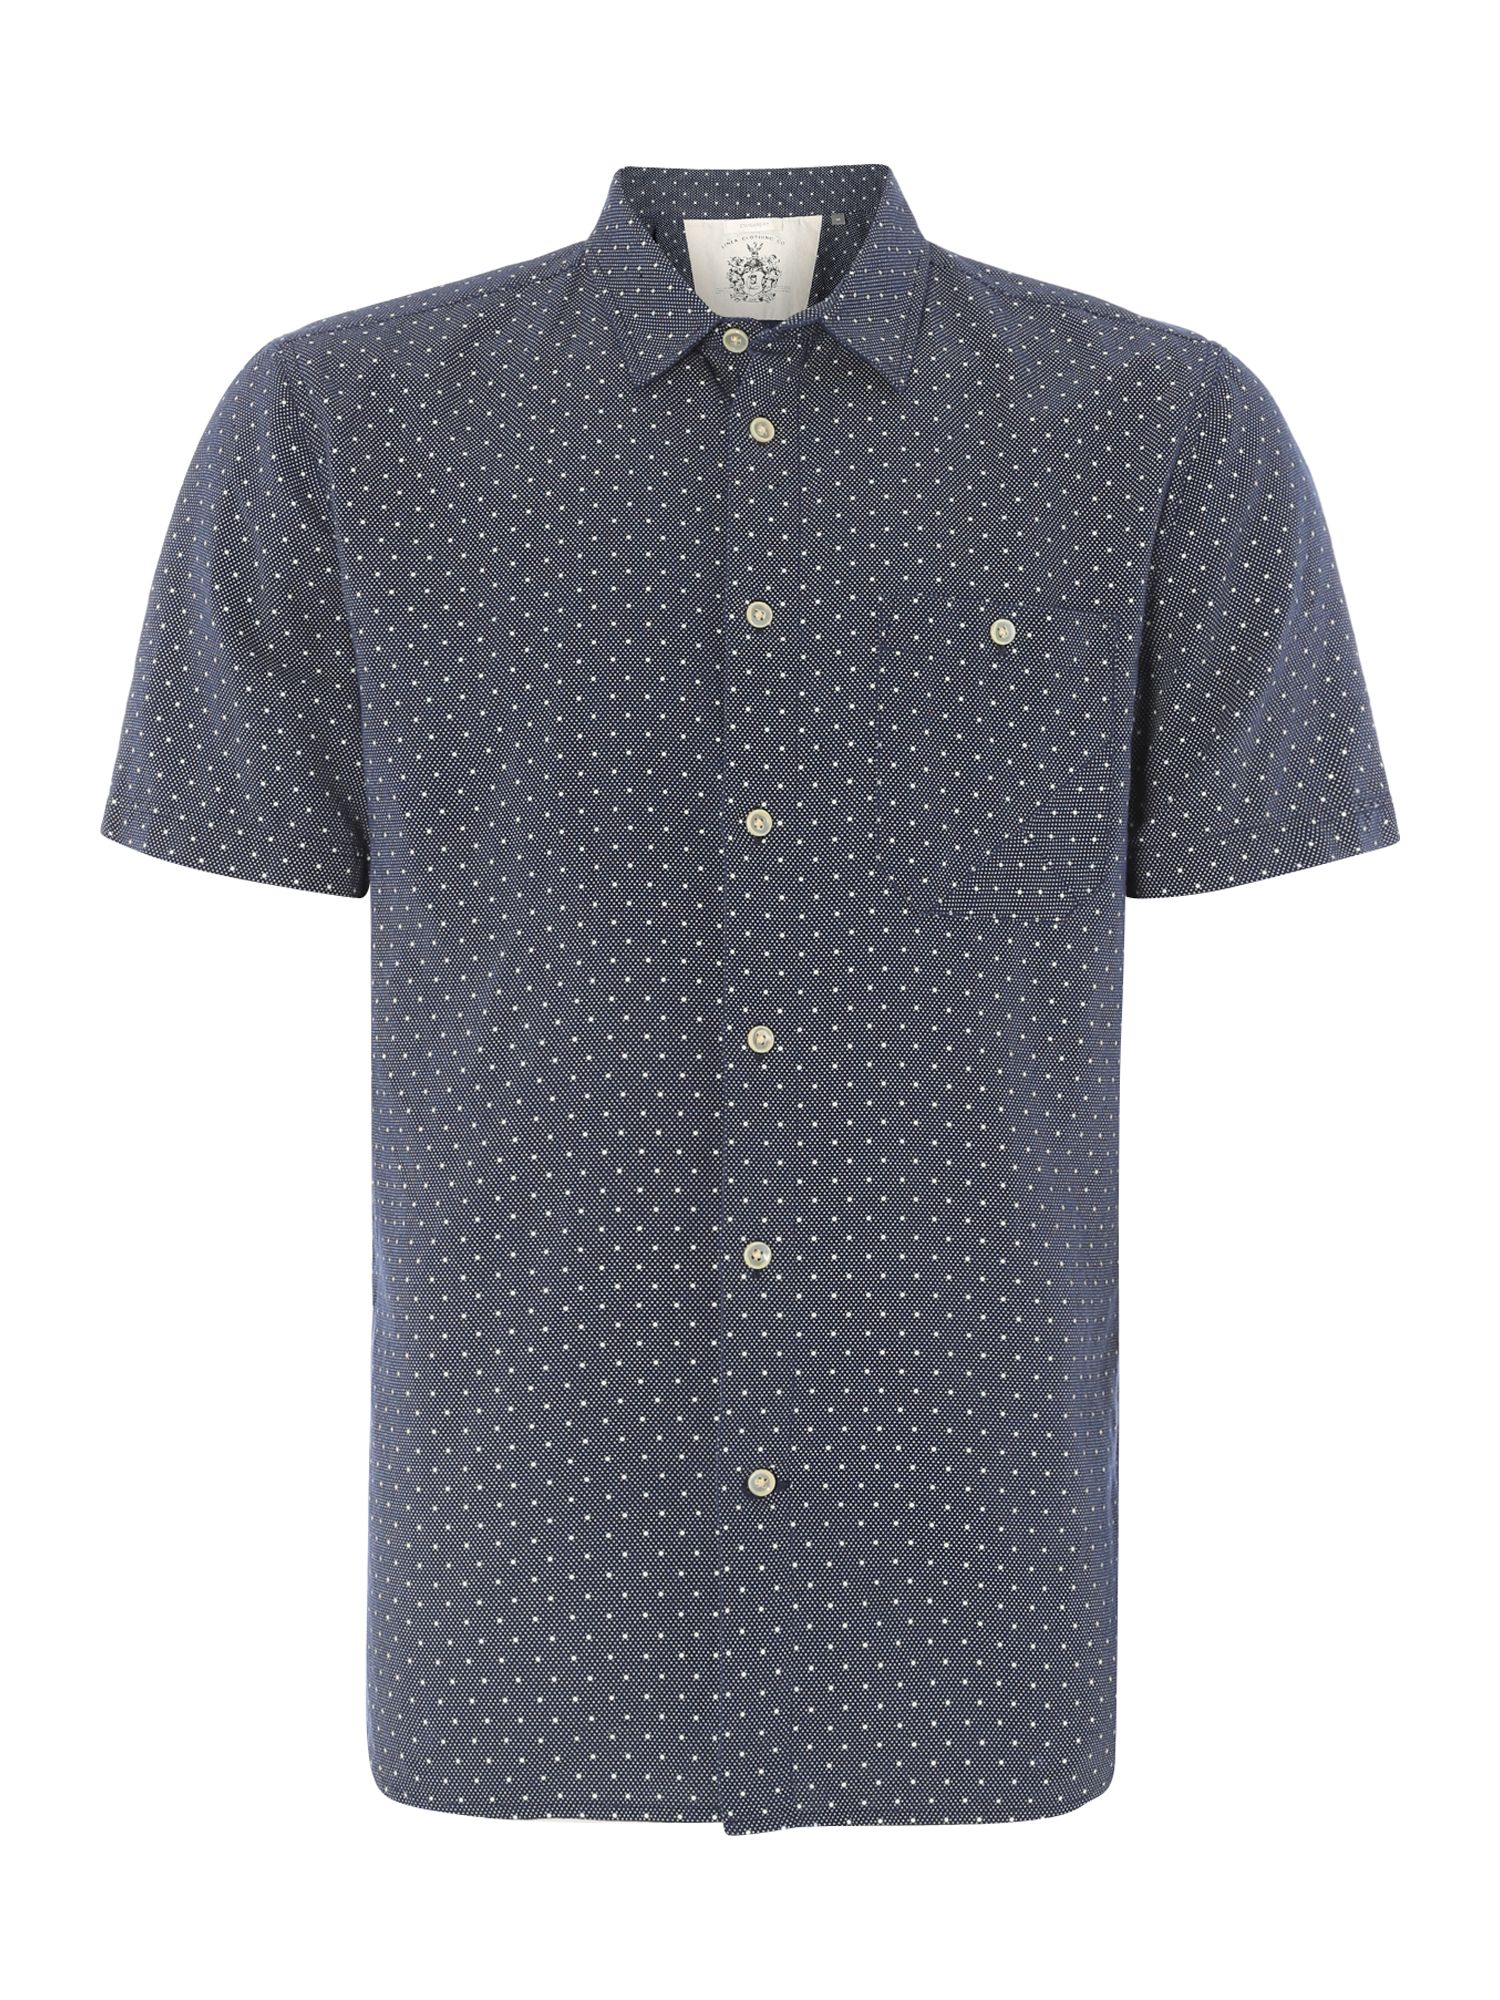 harry dot printed short sleeved shirt